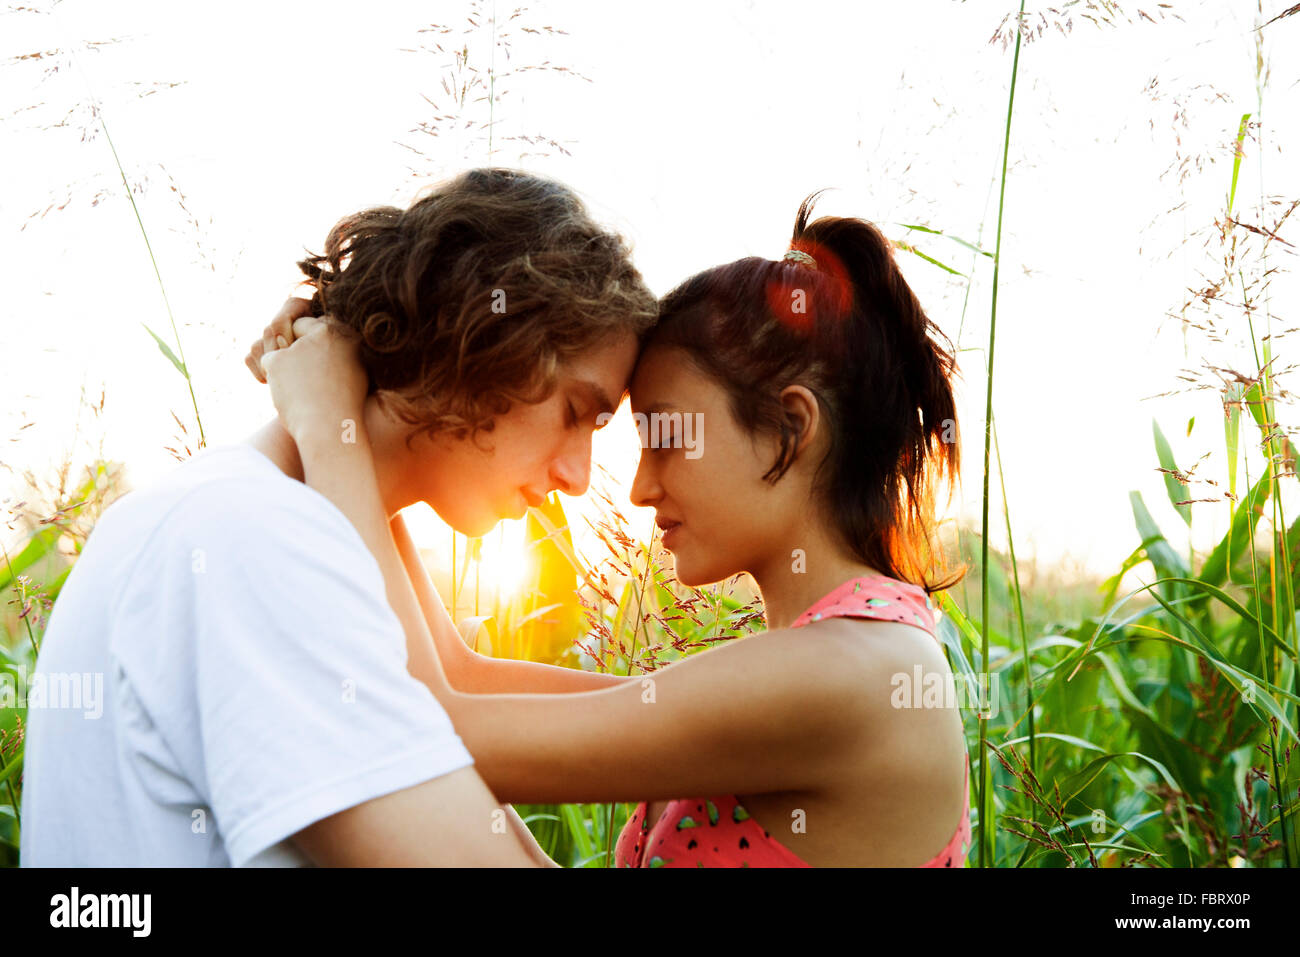 Young couple embracing, toucher leur front Photo Stock